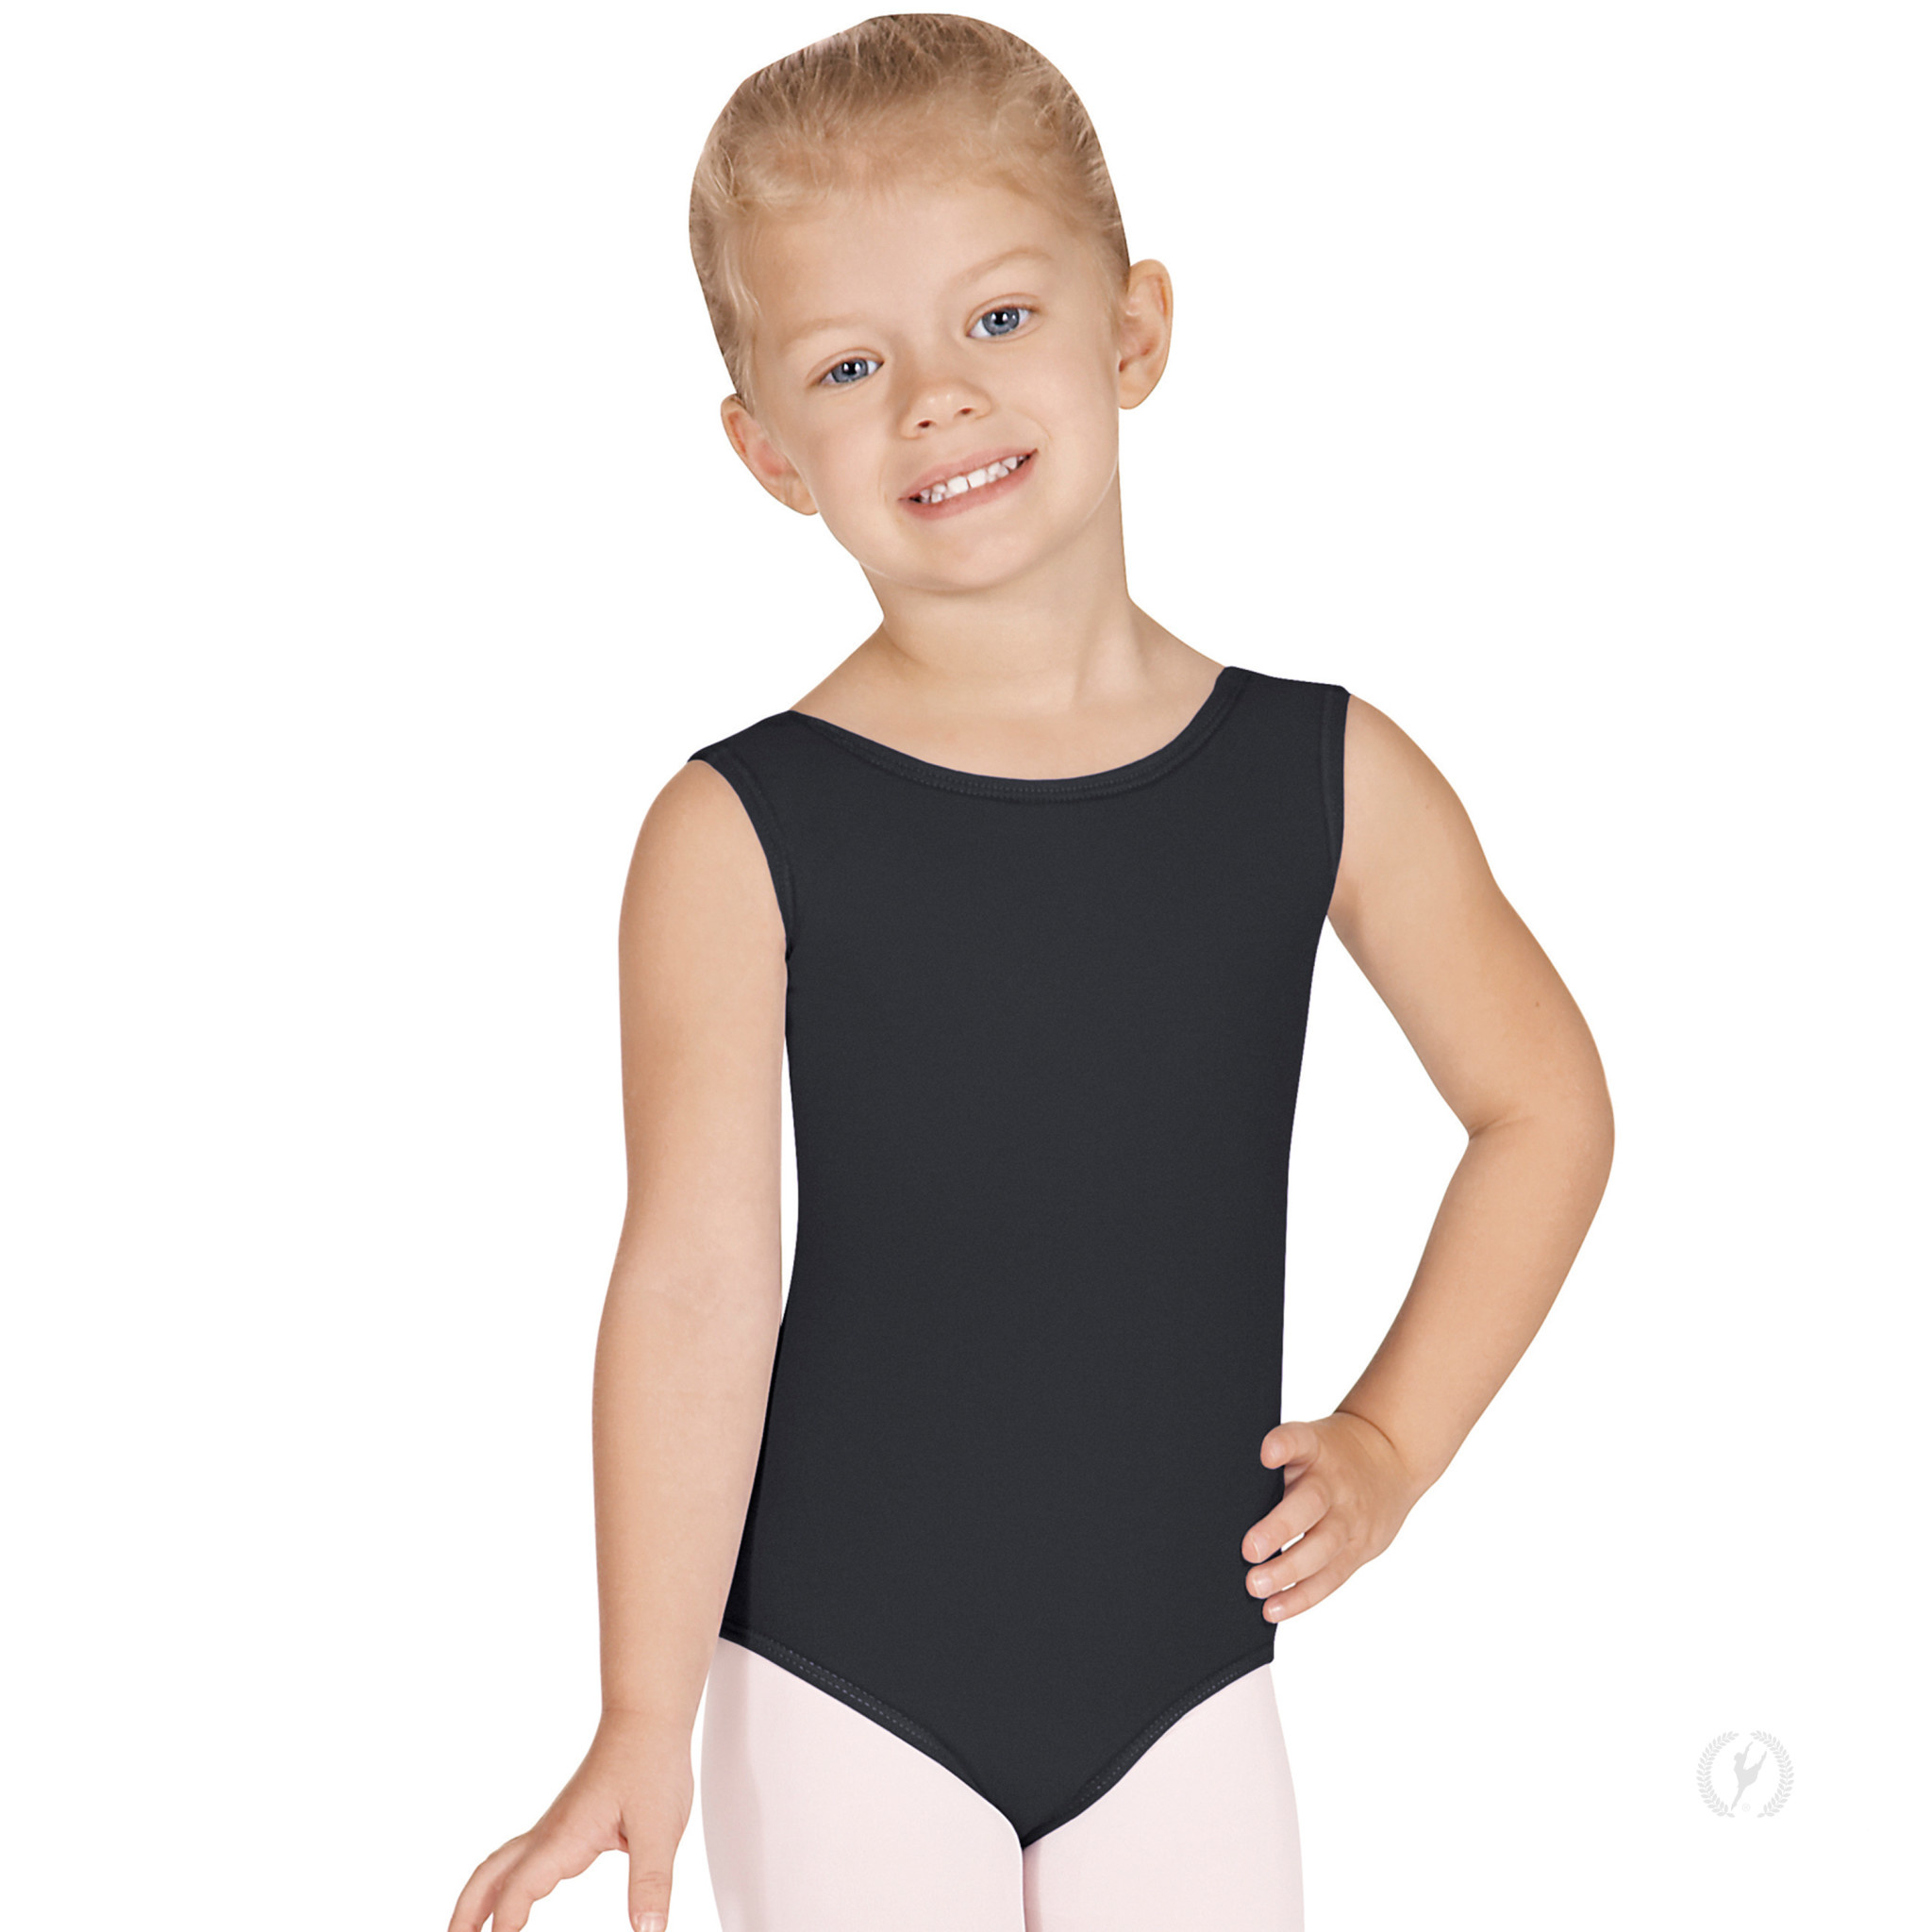 Eurotard 4489 - Tank Leotard with Tactel® Microfiber